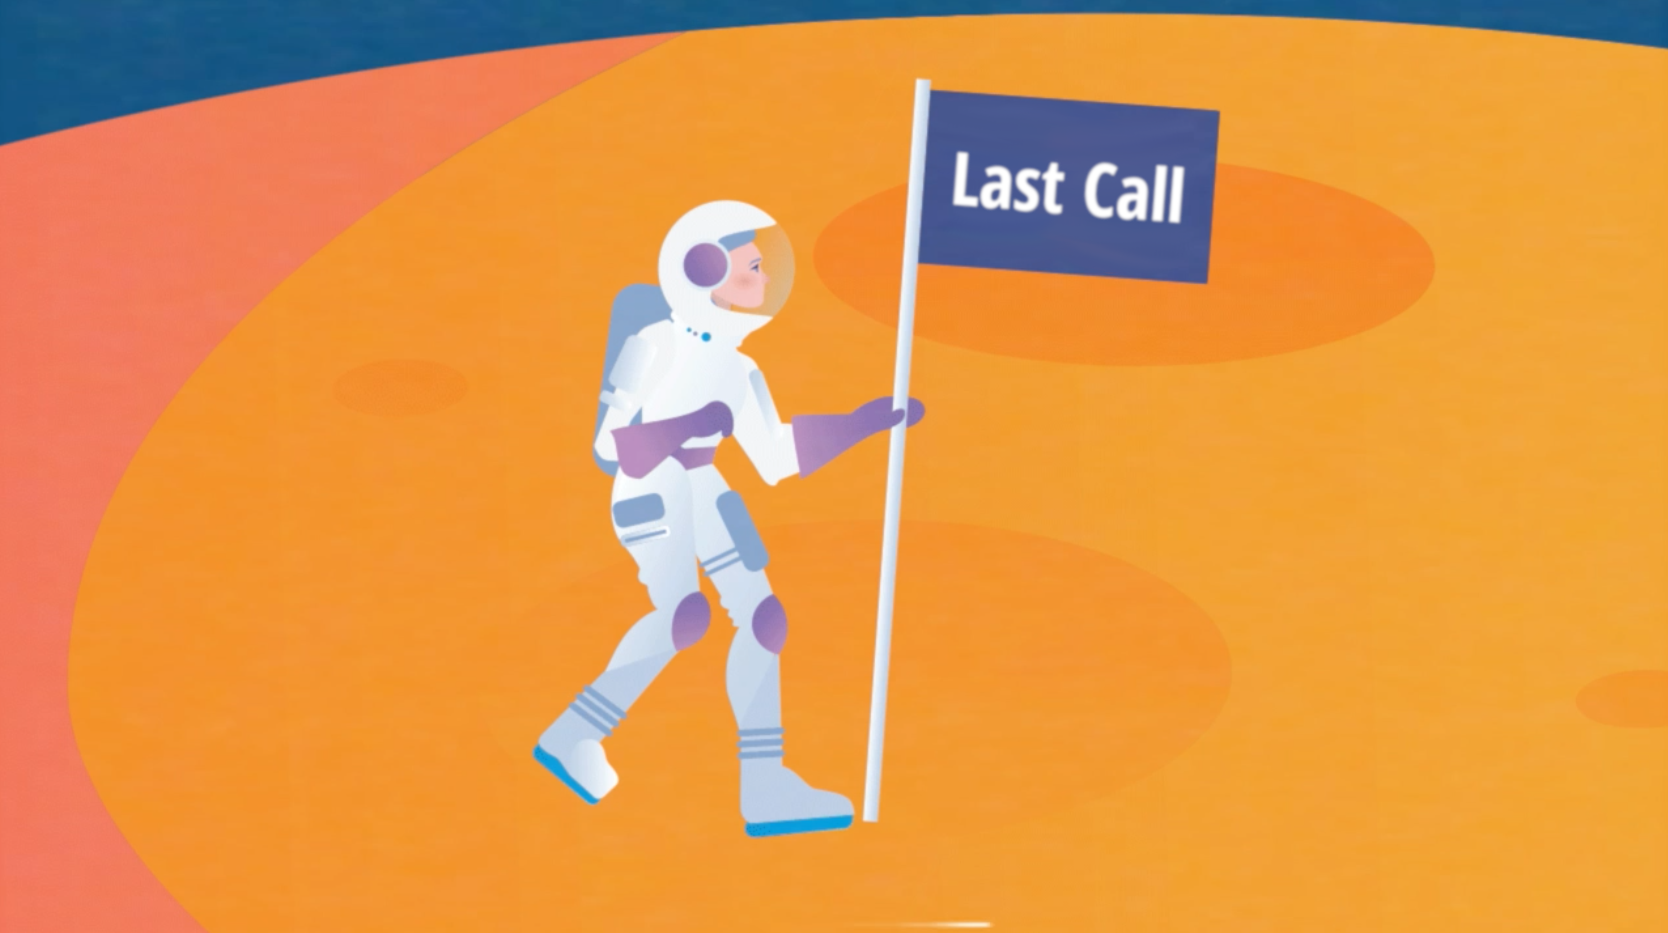 A Last Call for QUIC, a giant leap for the Internet